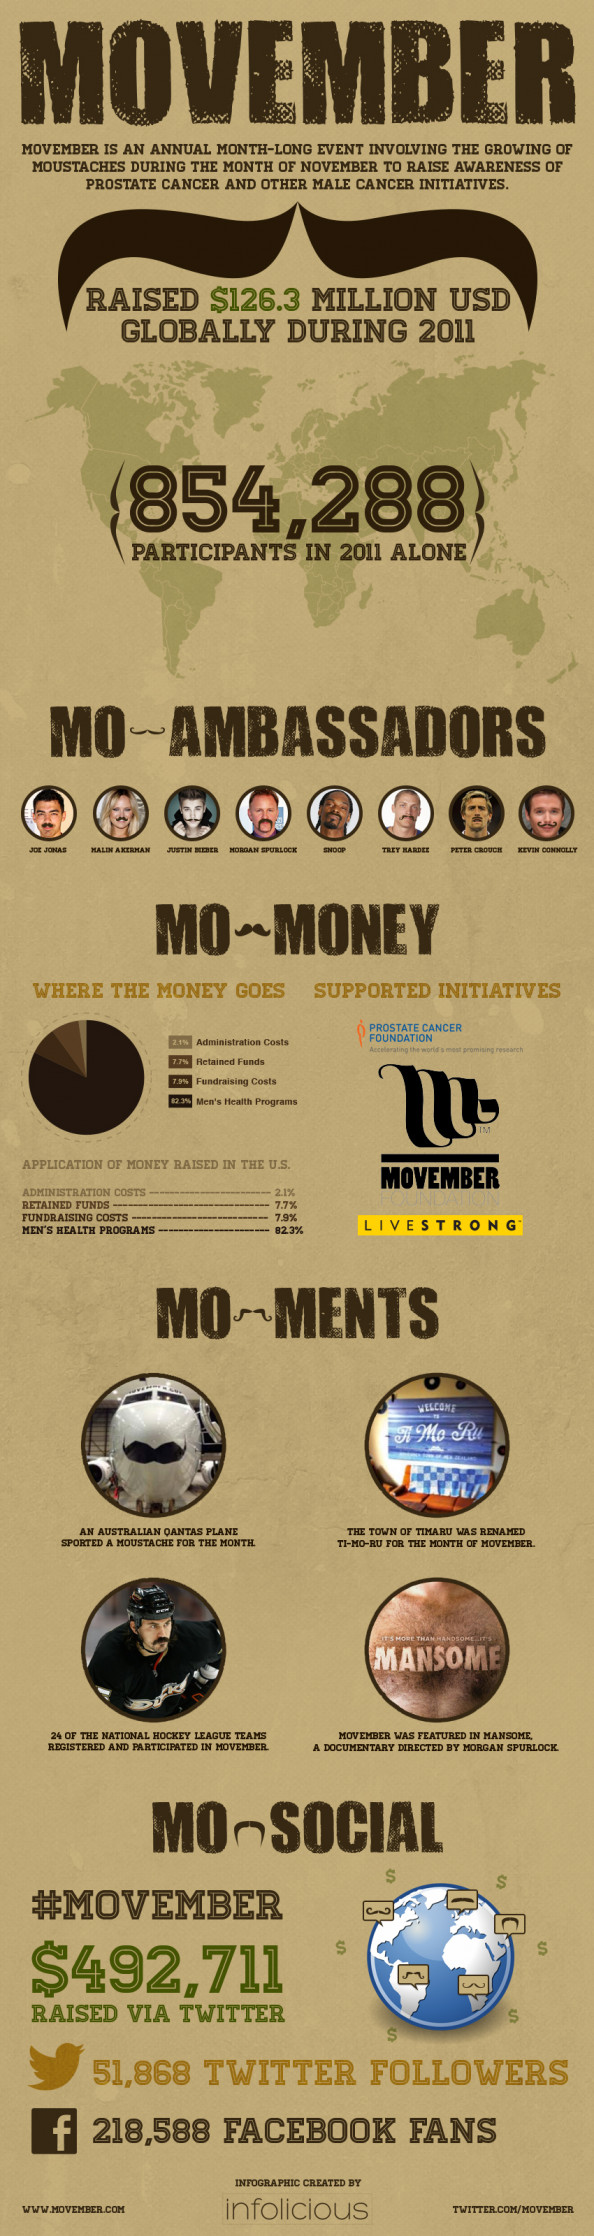 Movember Infographic